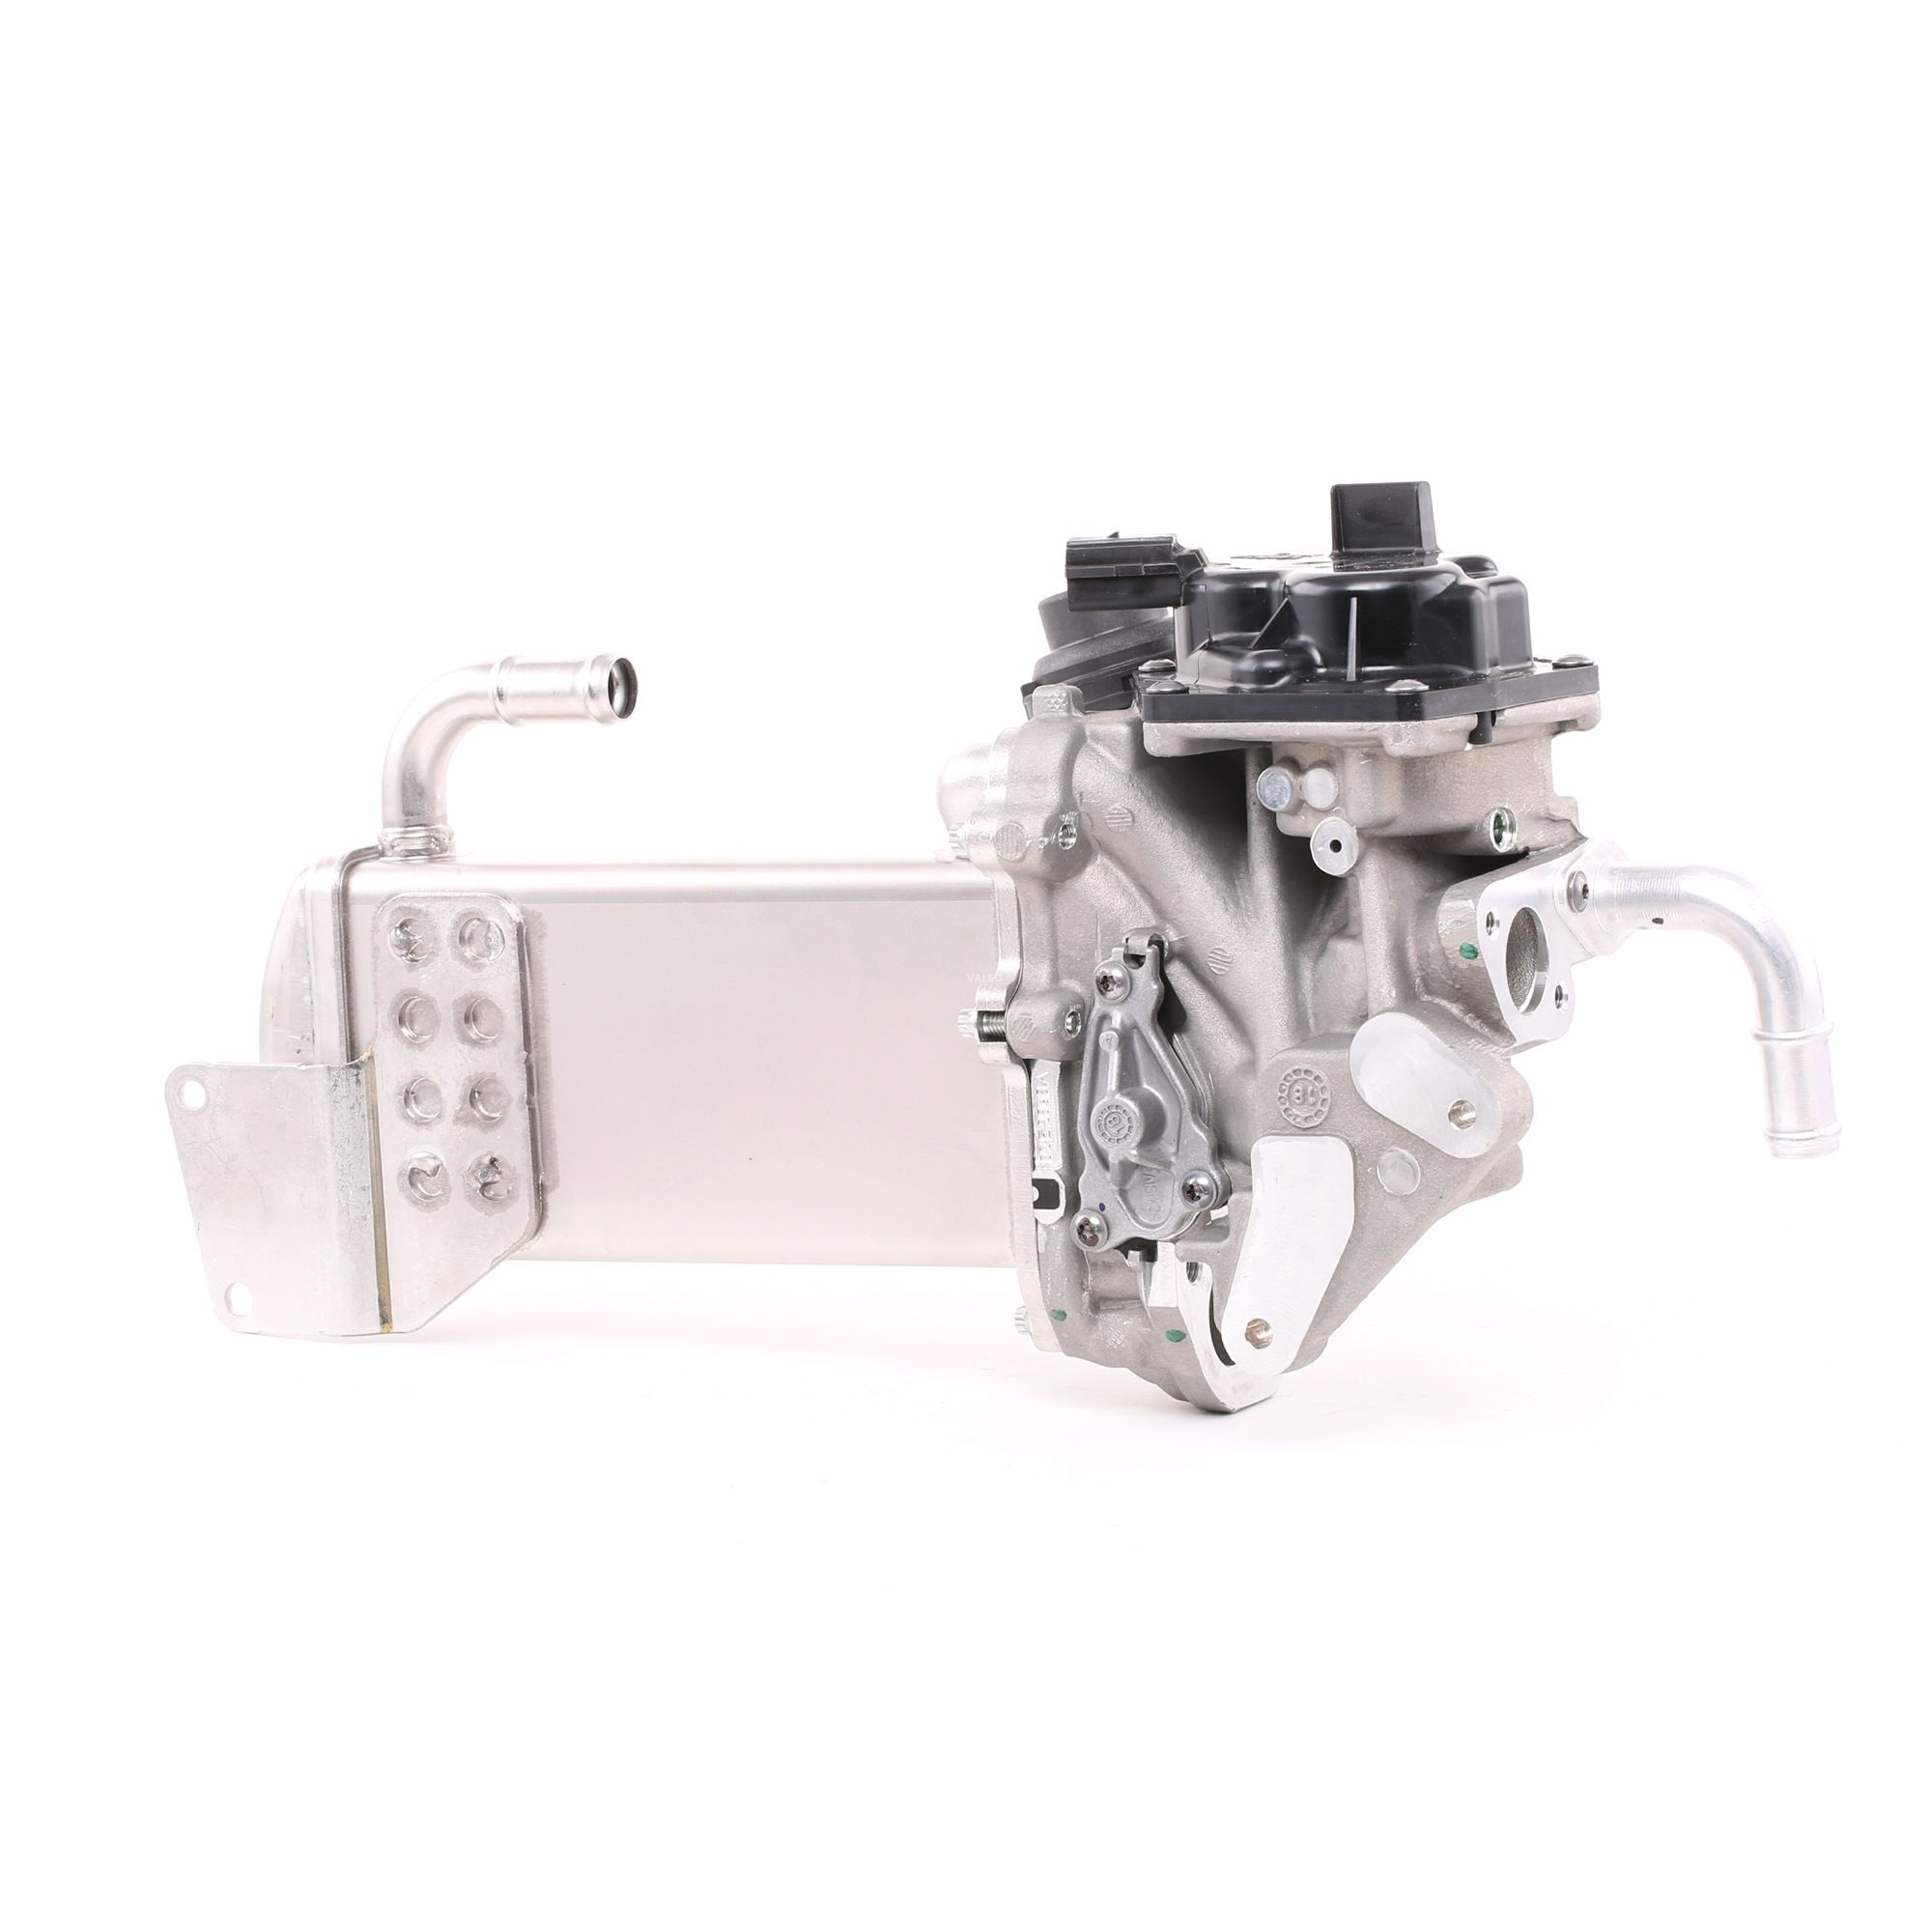 700435 VALEO ORIGINAL PART with EGR cooler, with gaskets/seals, with EGR valve, with vacuum bypass, without clamp EGR Module 700435 cheap